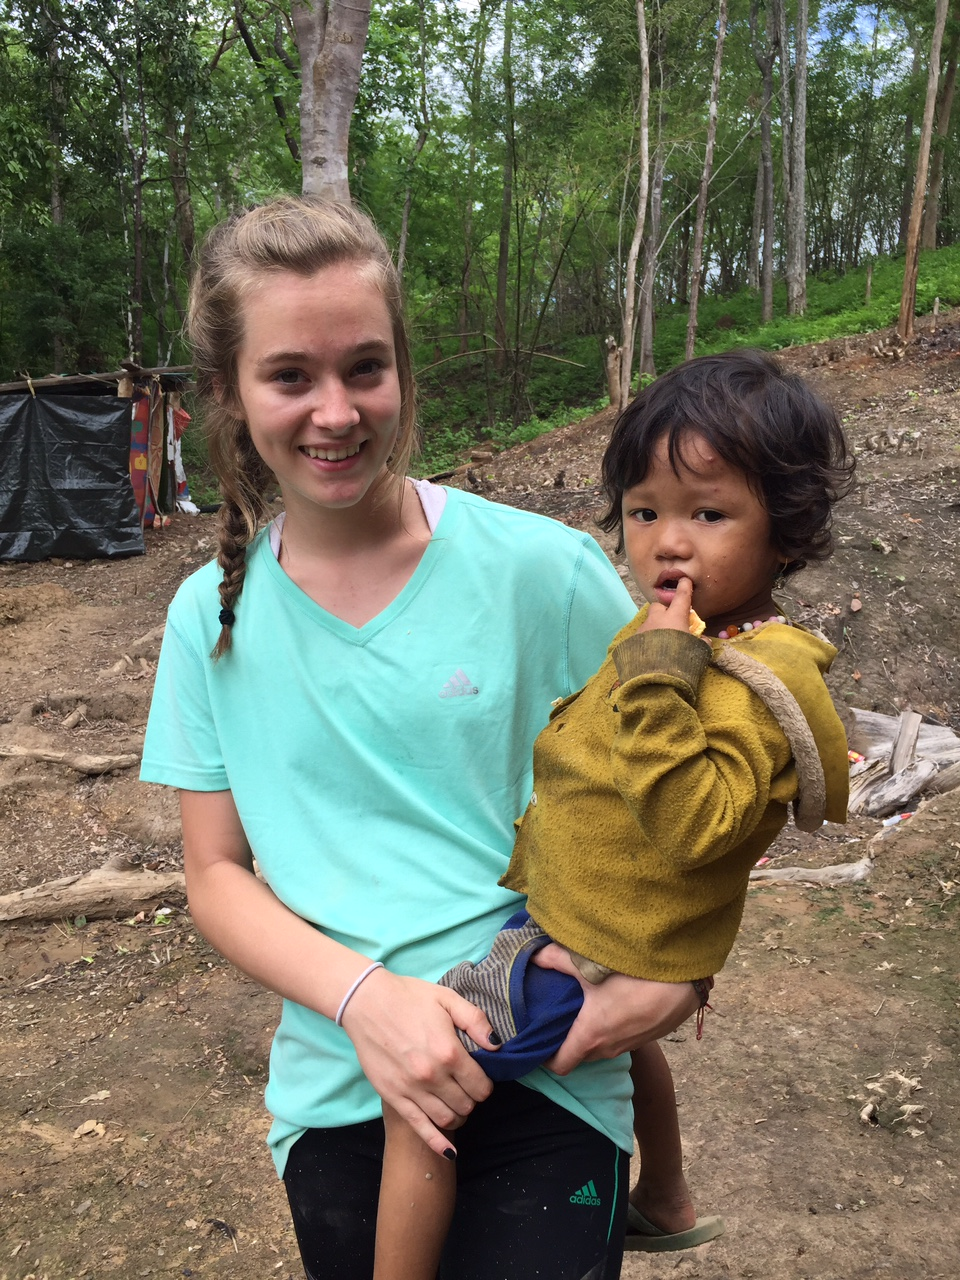 Jordan holding one of the sweet children from the nearest village in Burma before the attacks